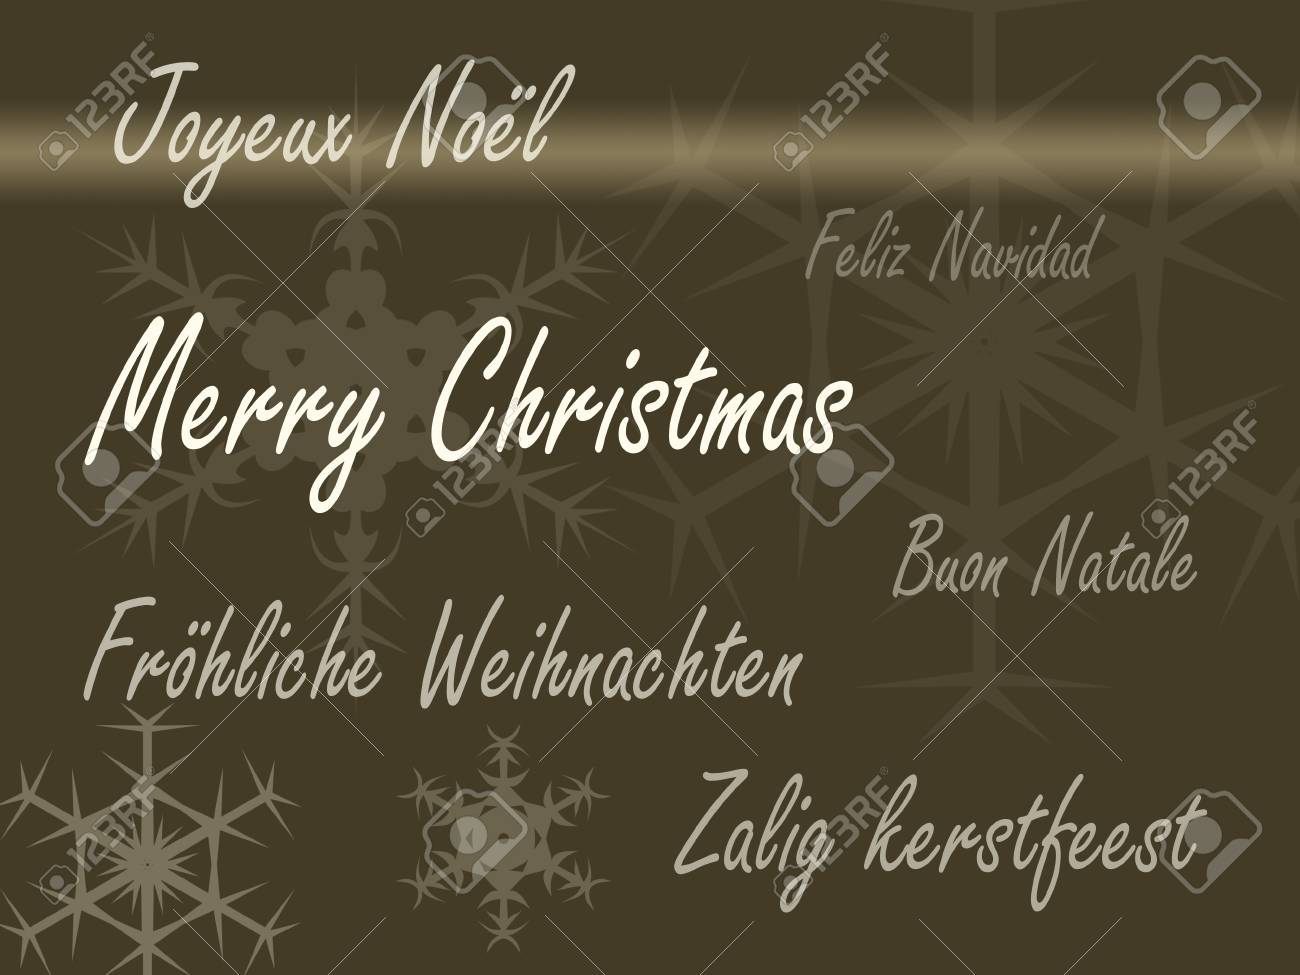 Merry Christmas card in different languages Stock Photo - 8473712